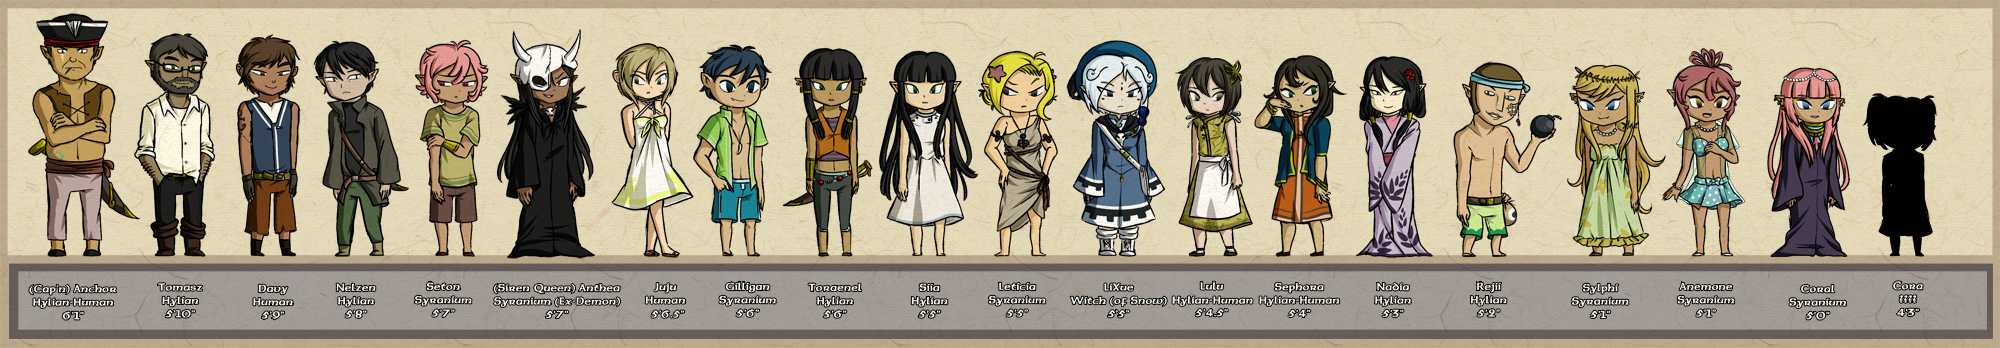 Zelda FC's Line-Up by Icy-Snowflakes